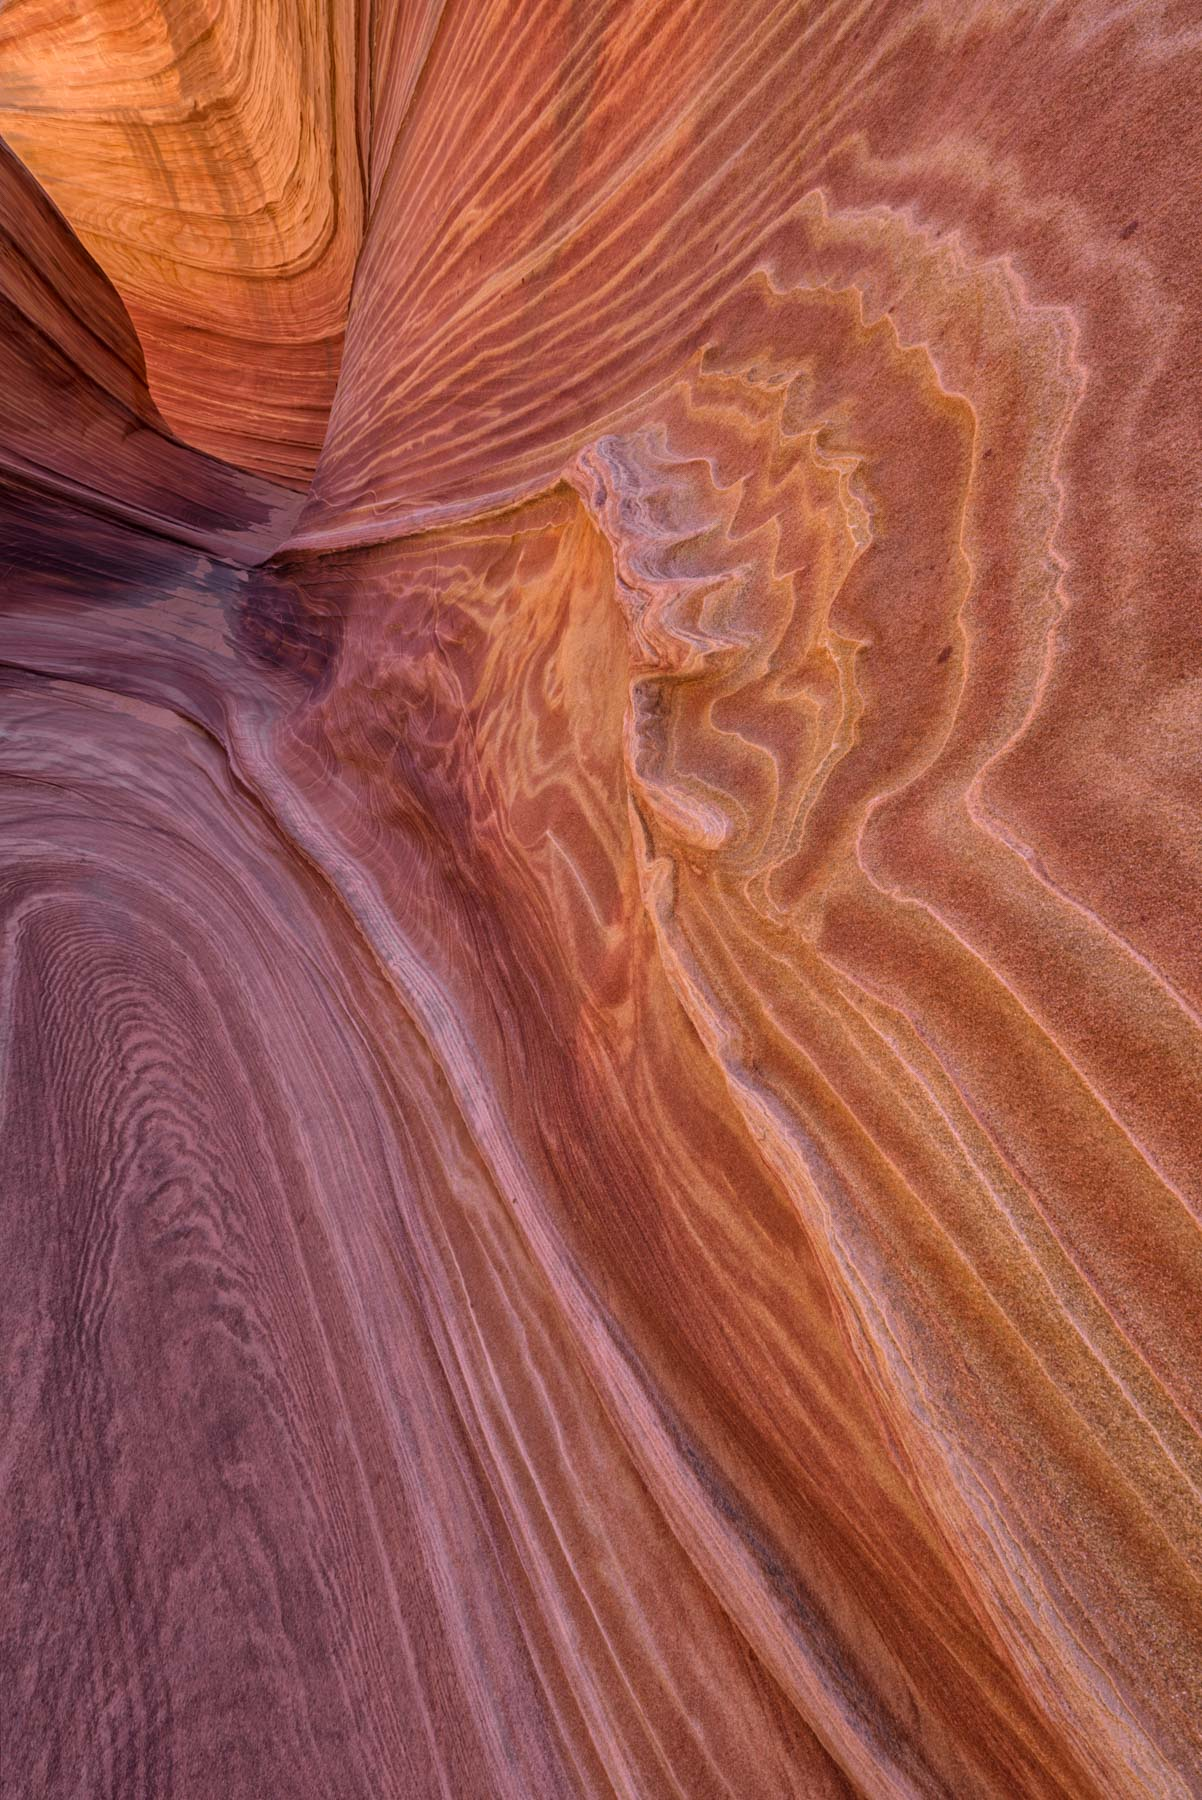 Soft sediment deformation at The Wave in Coyote Buttes North